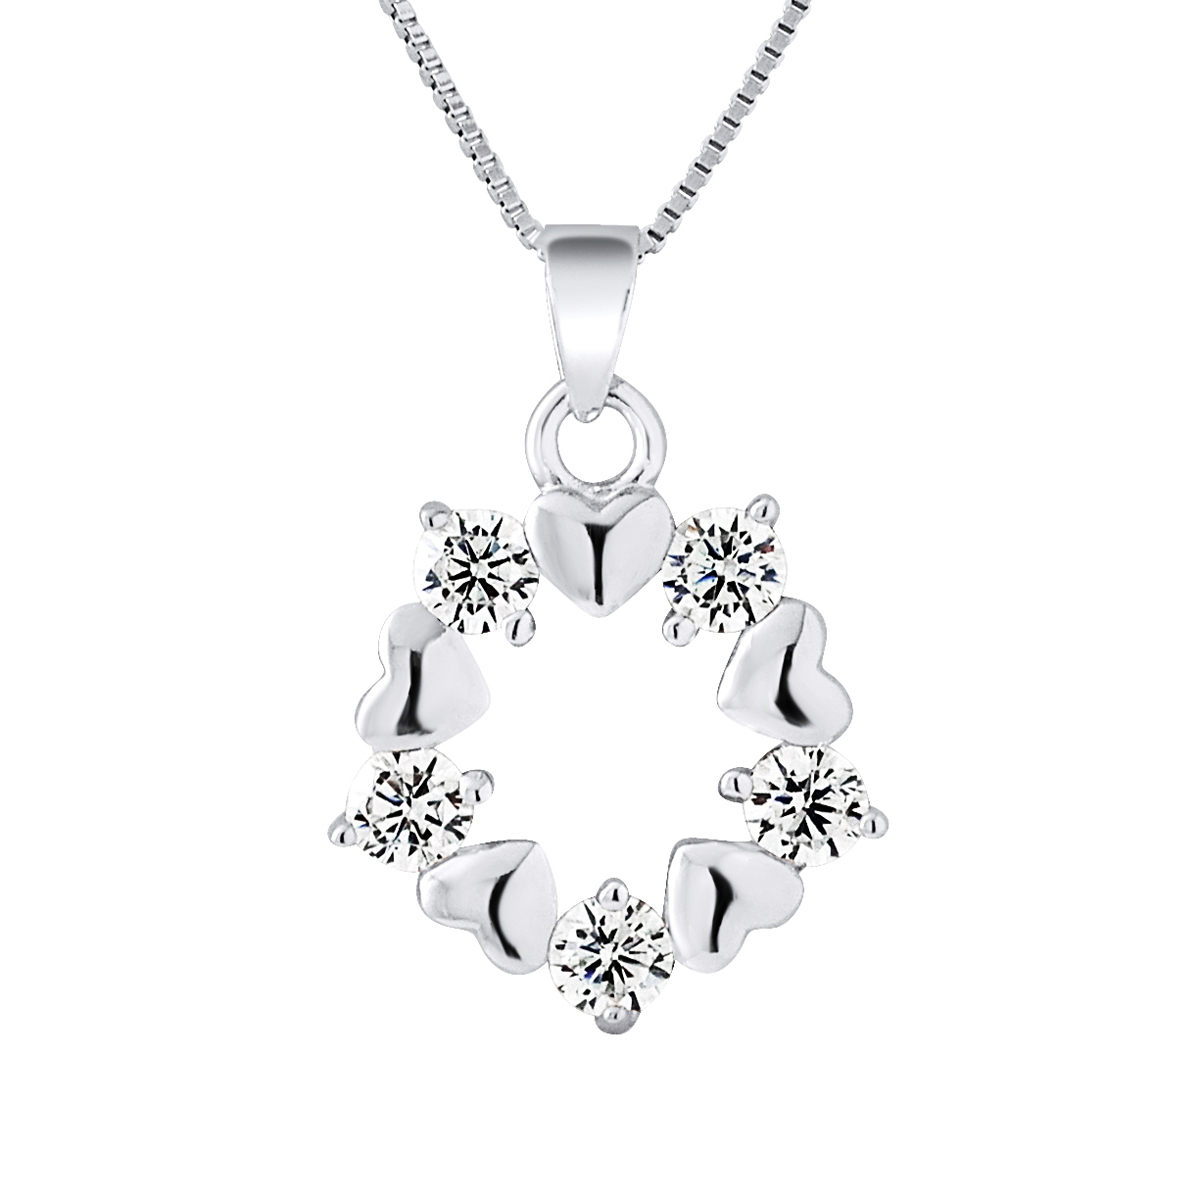 Flower Necklace In 925 Silver | Upp till 70% |